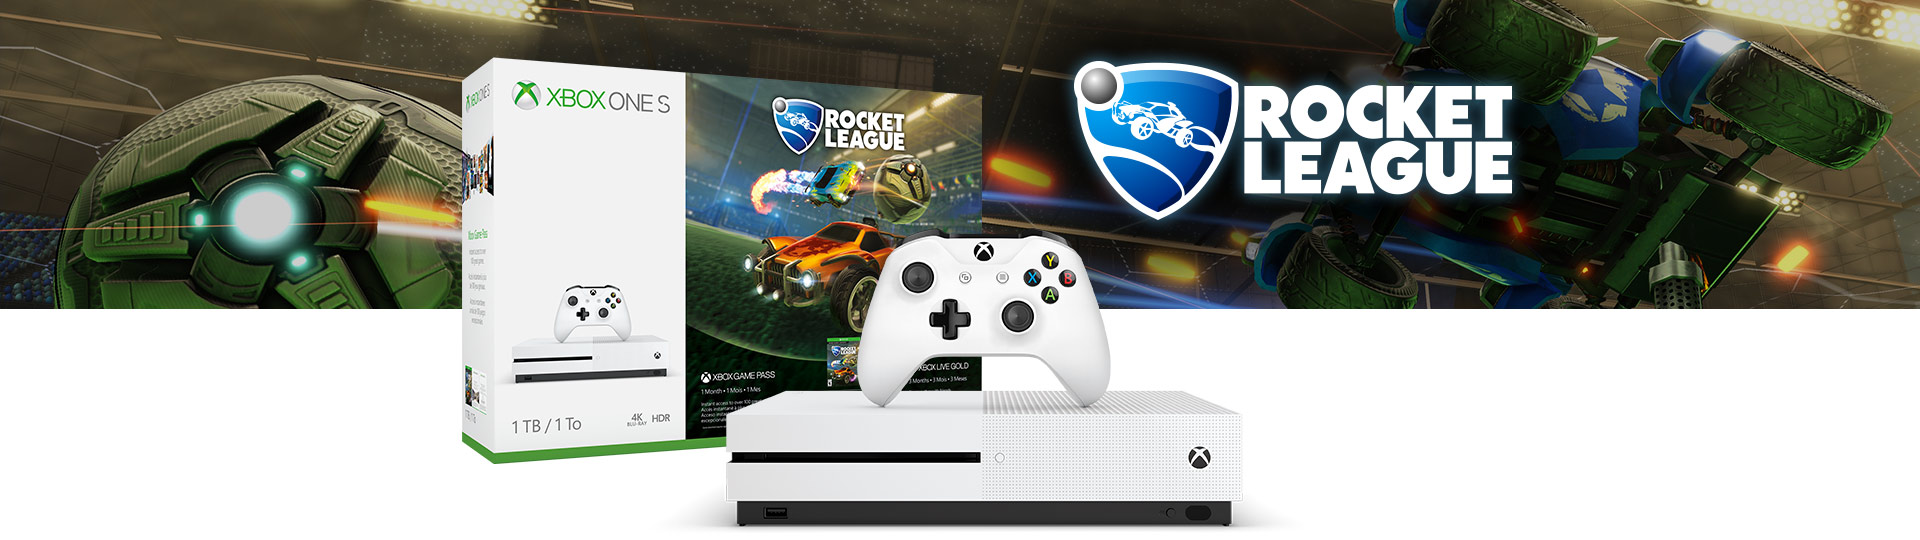 Xbox One S Rocket League Blast-Off-pakke, 1 terabyte